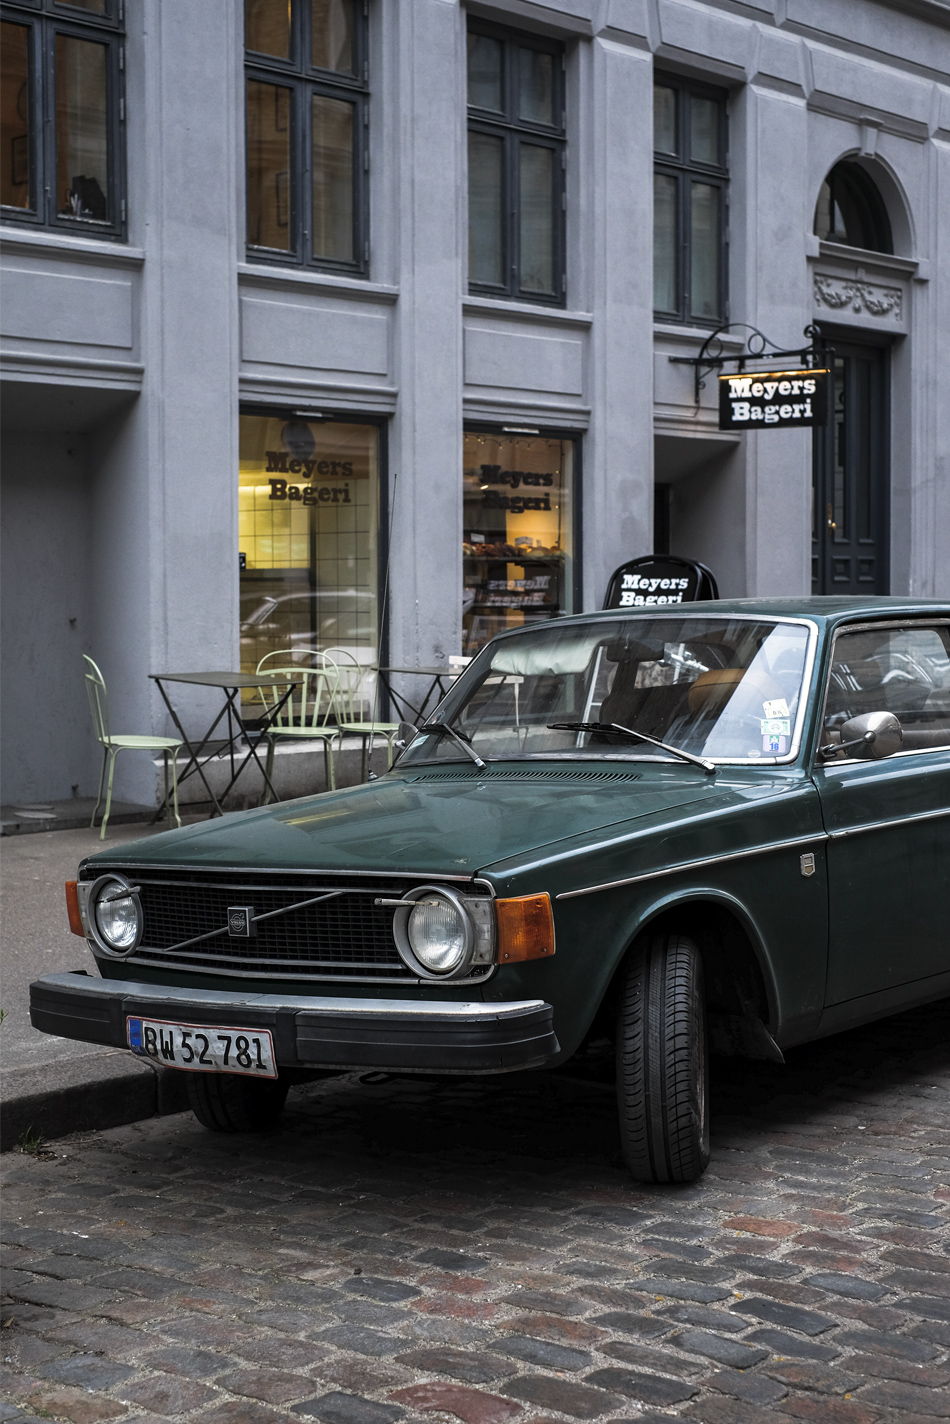 Meyers Bageri in Copenhagen and car